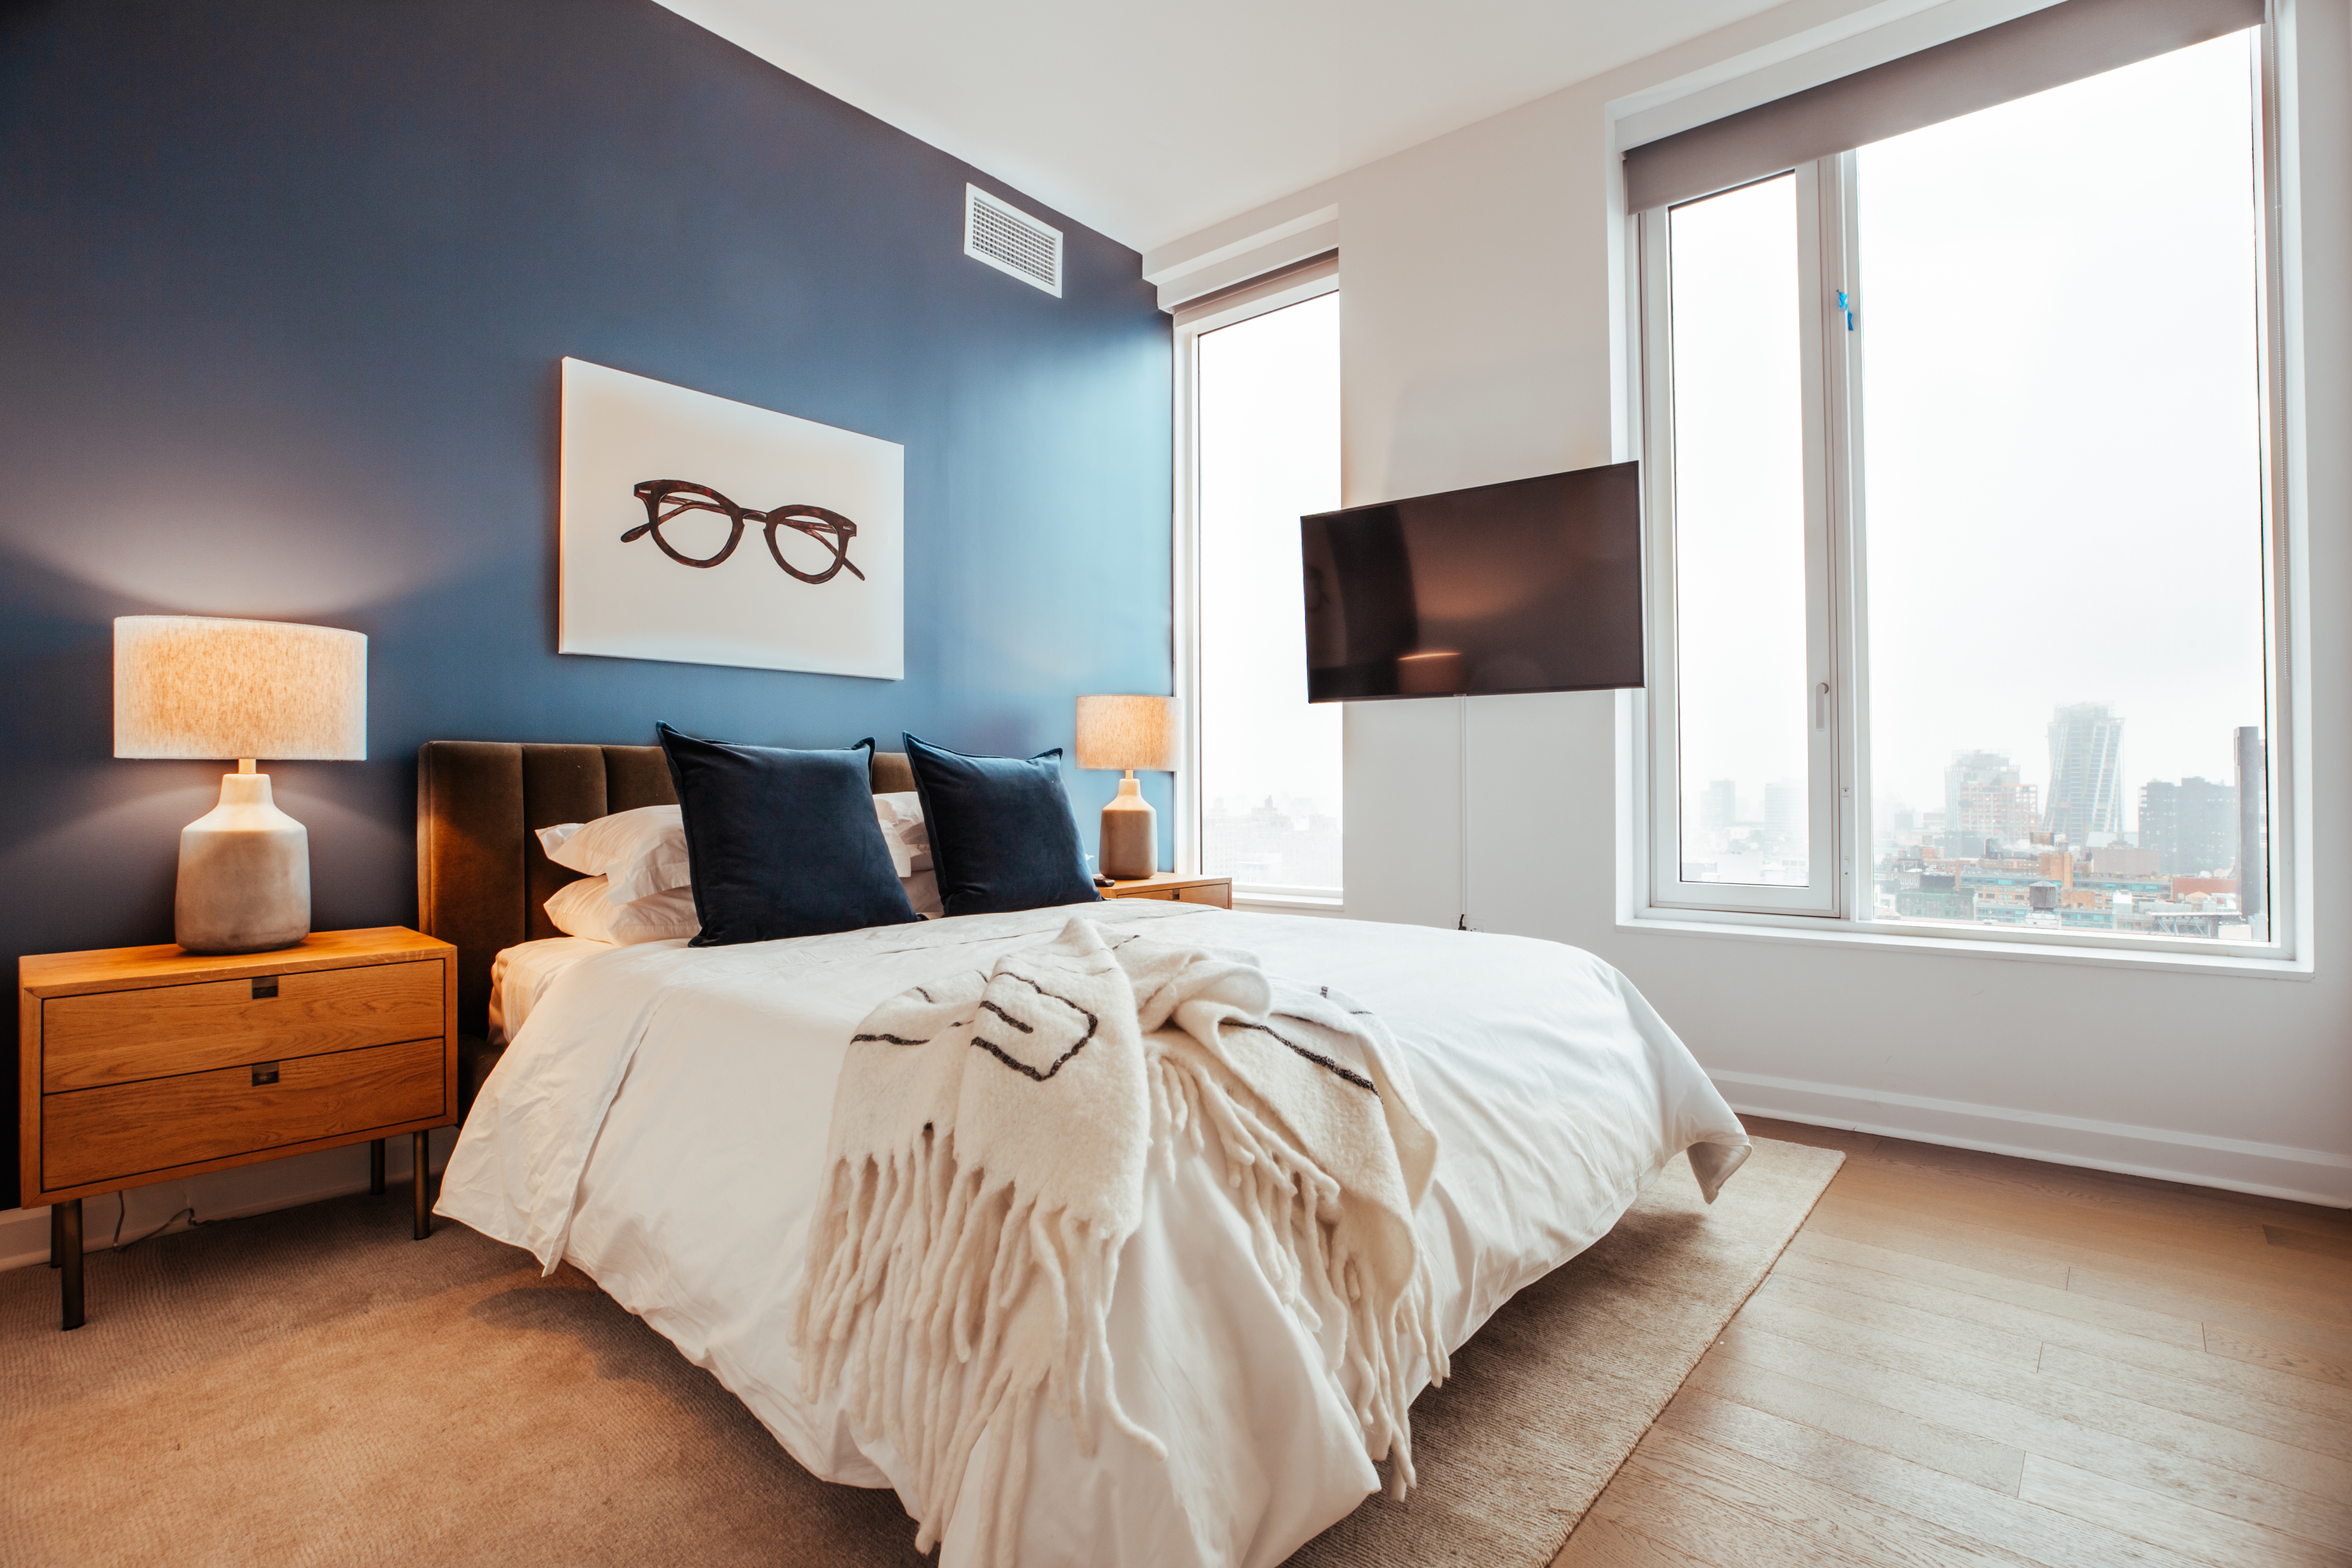 A furnished apartment in New York City, featuring a blue wall, white bedspread, and eyeglass poster above the headboard.